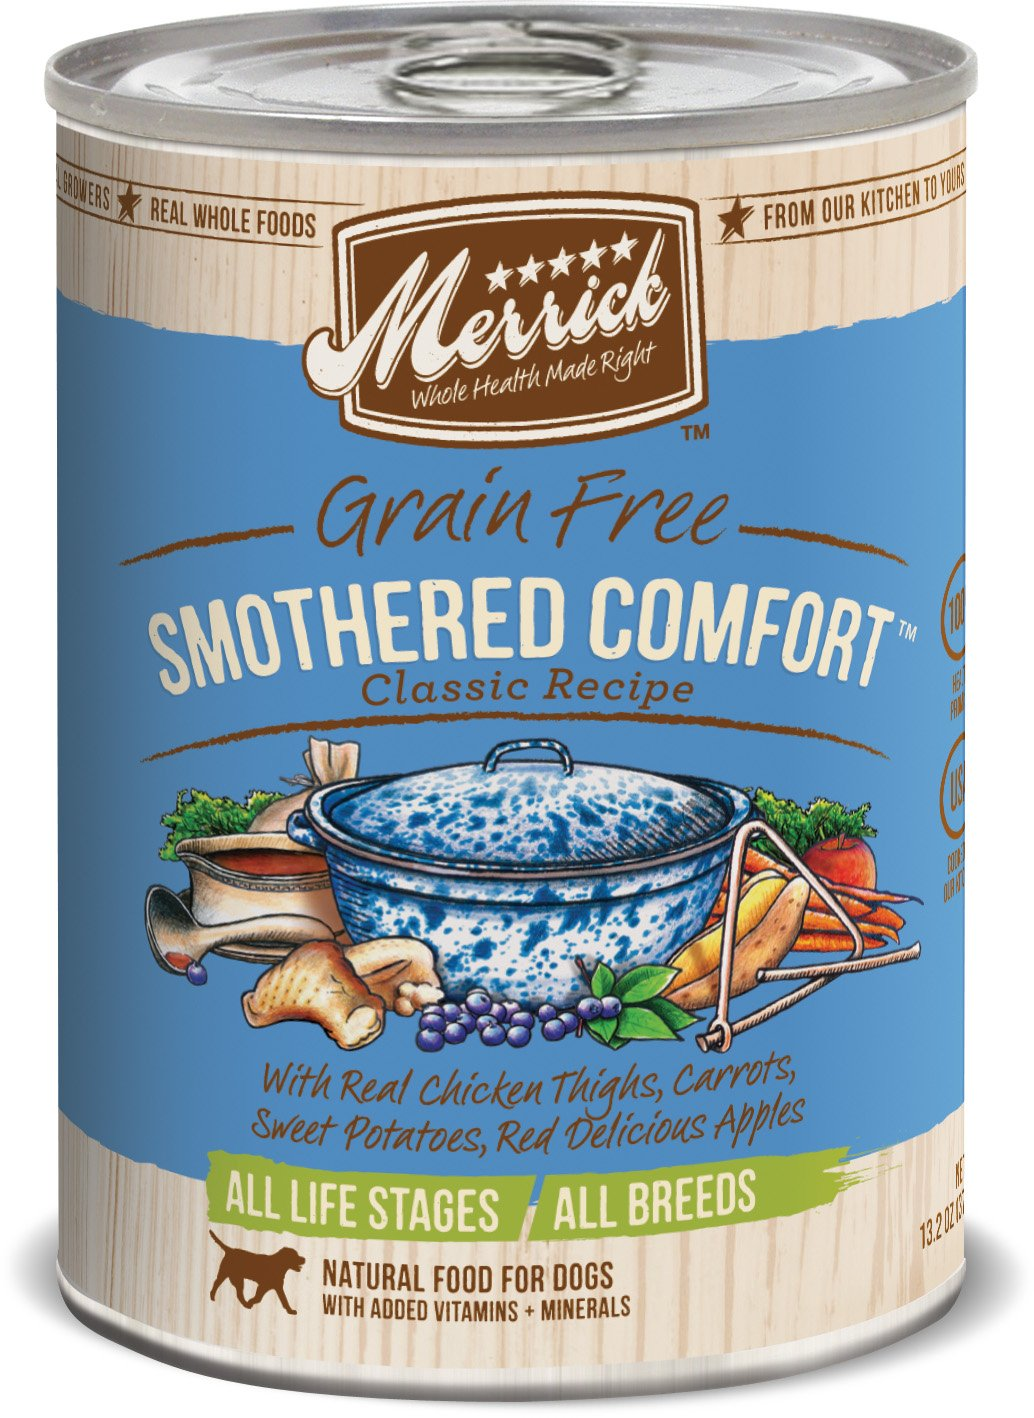 Merrick Classic Grain Free Smothered Comfort Wet Dog Food, Case Of 12 Cans by Merrick